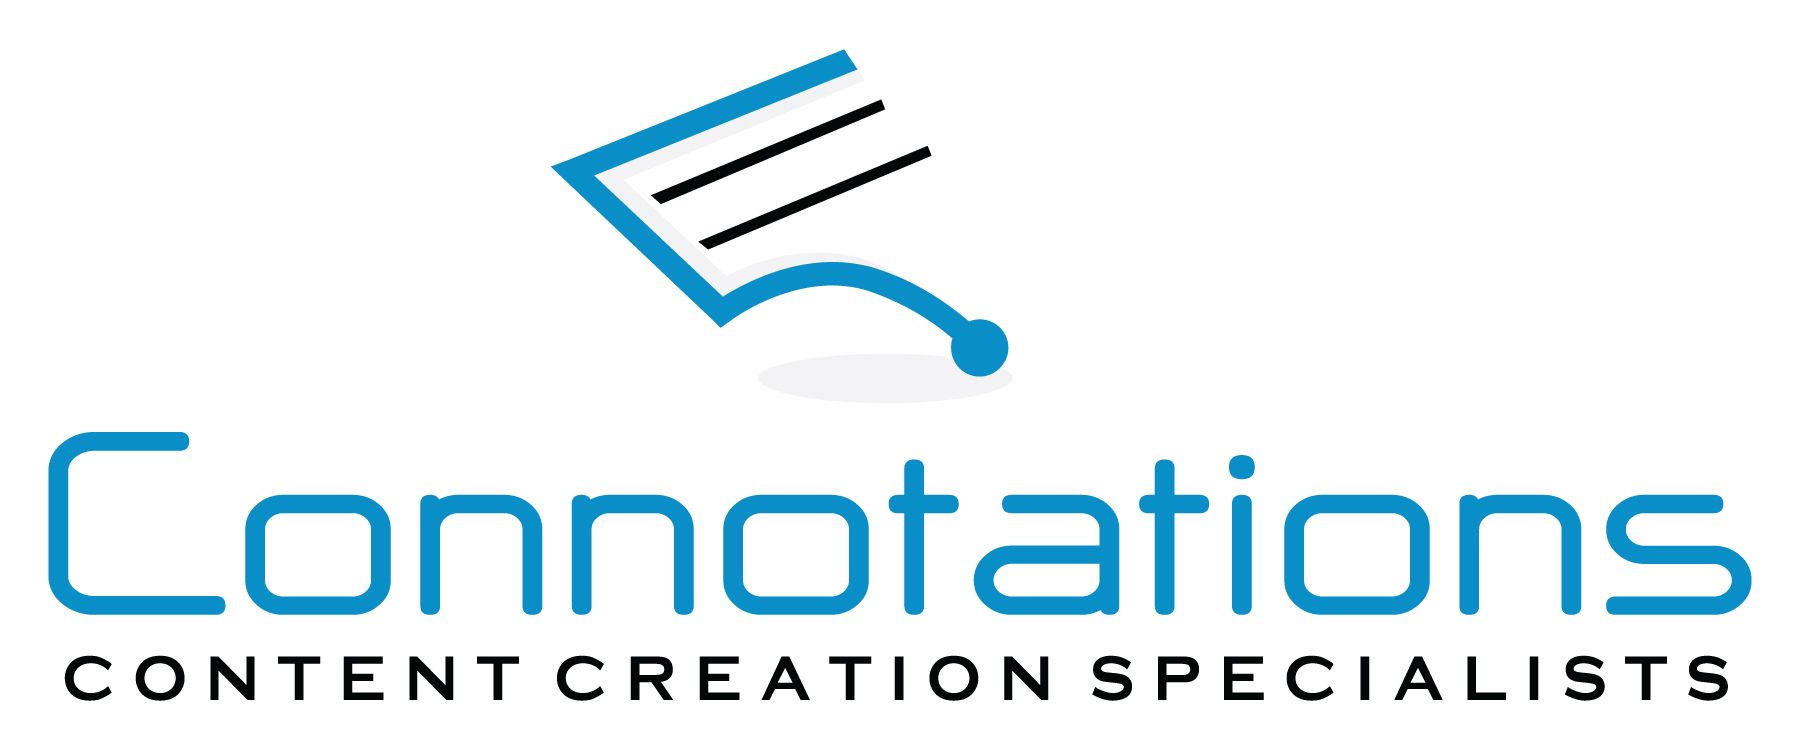 Connotations - Content Creation Specialists Logo